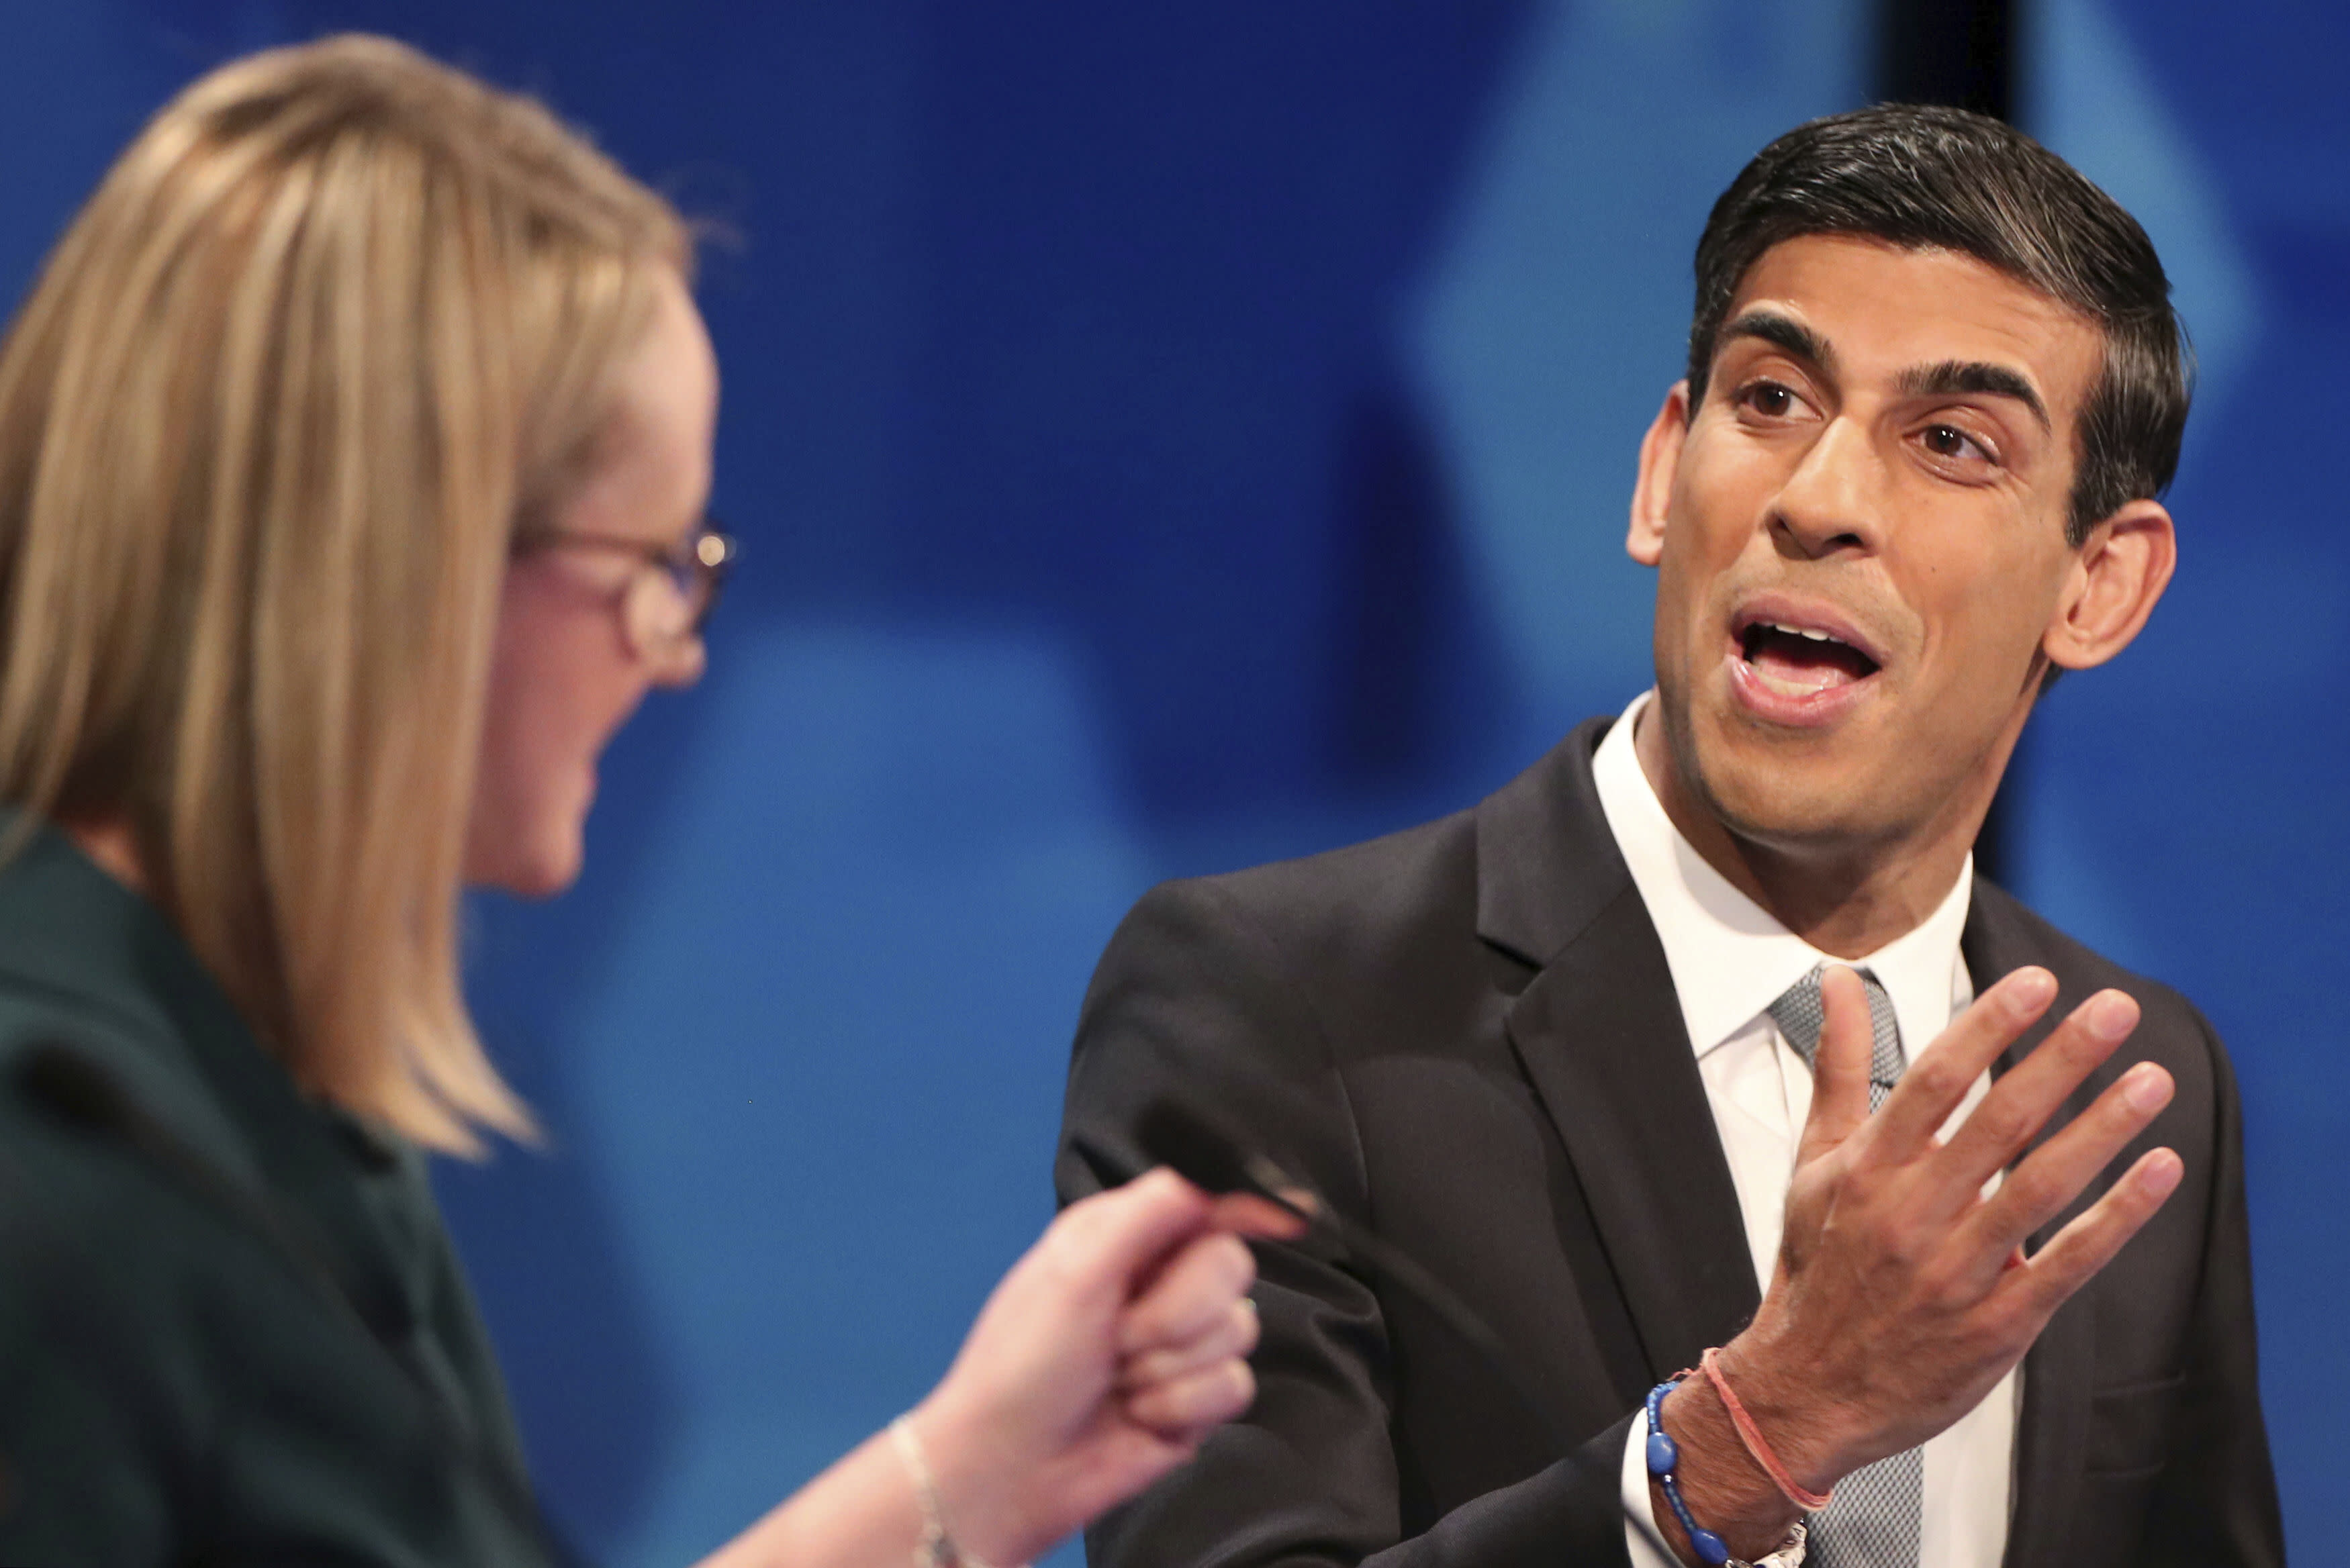 Conservatives' Chief Secretary to the Treasury Rishi Sunak, right and Labour's shadow business secretary Rebecca Long Bailey speak, during a general election debate in Cardiff, Wales, Friday, Nov. 29, 2019. (Hannah McKay/Pool Photo via AP)